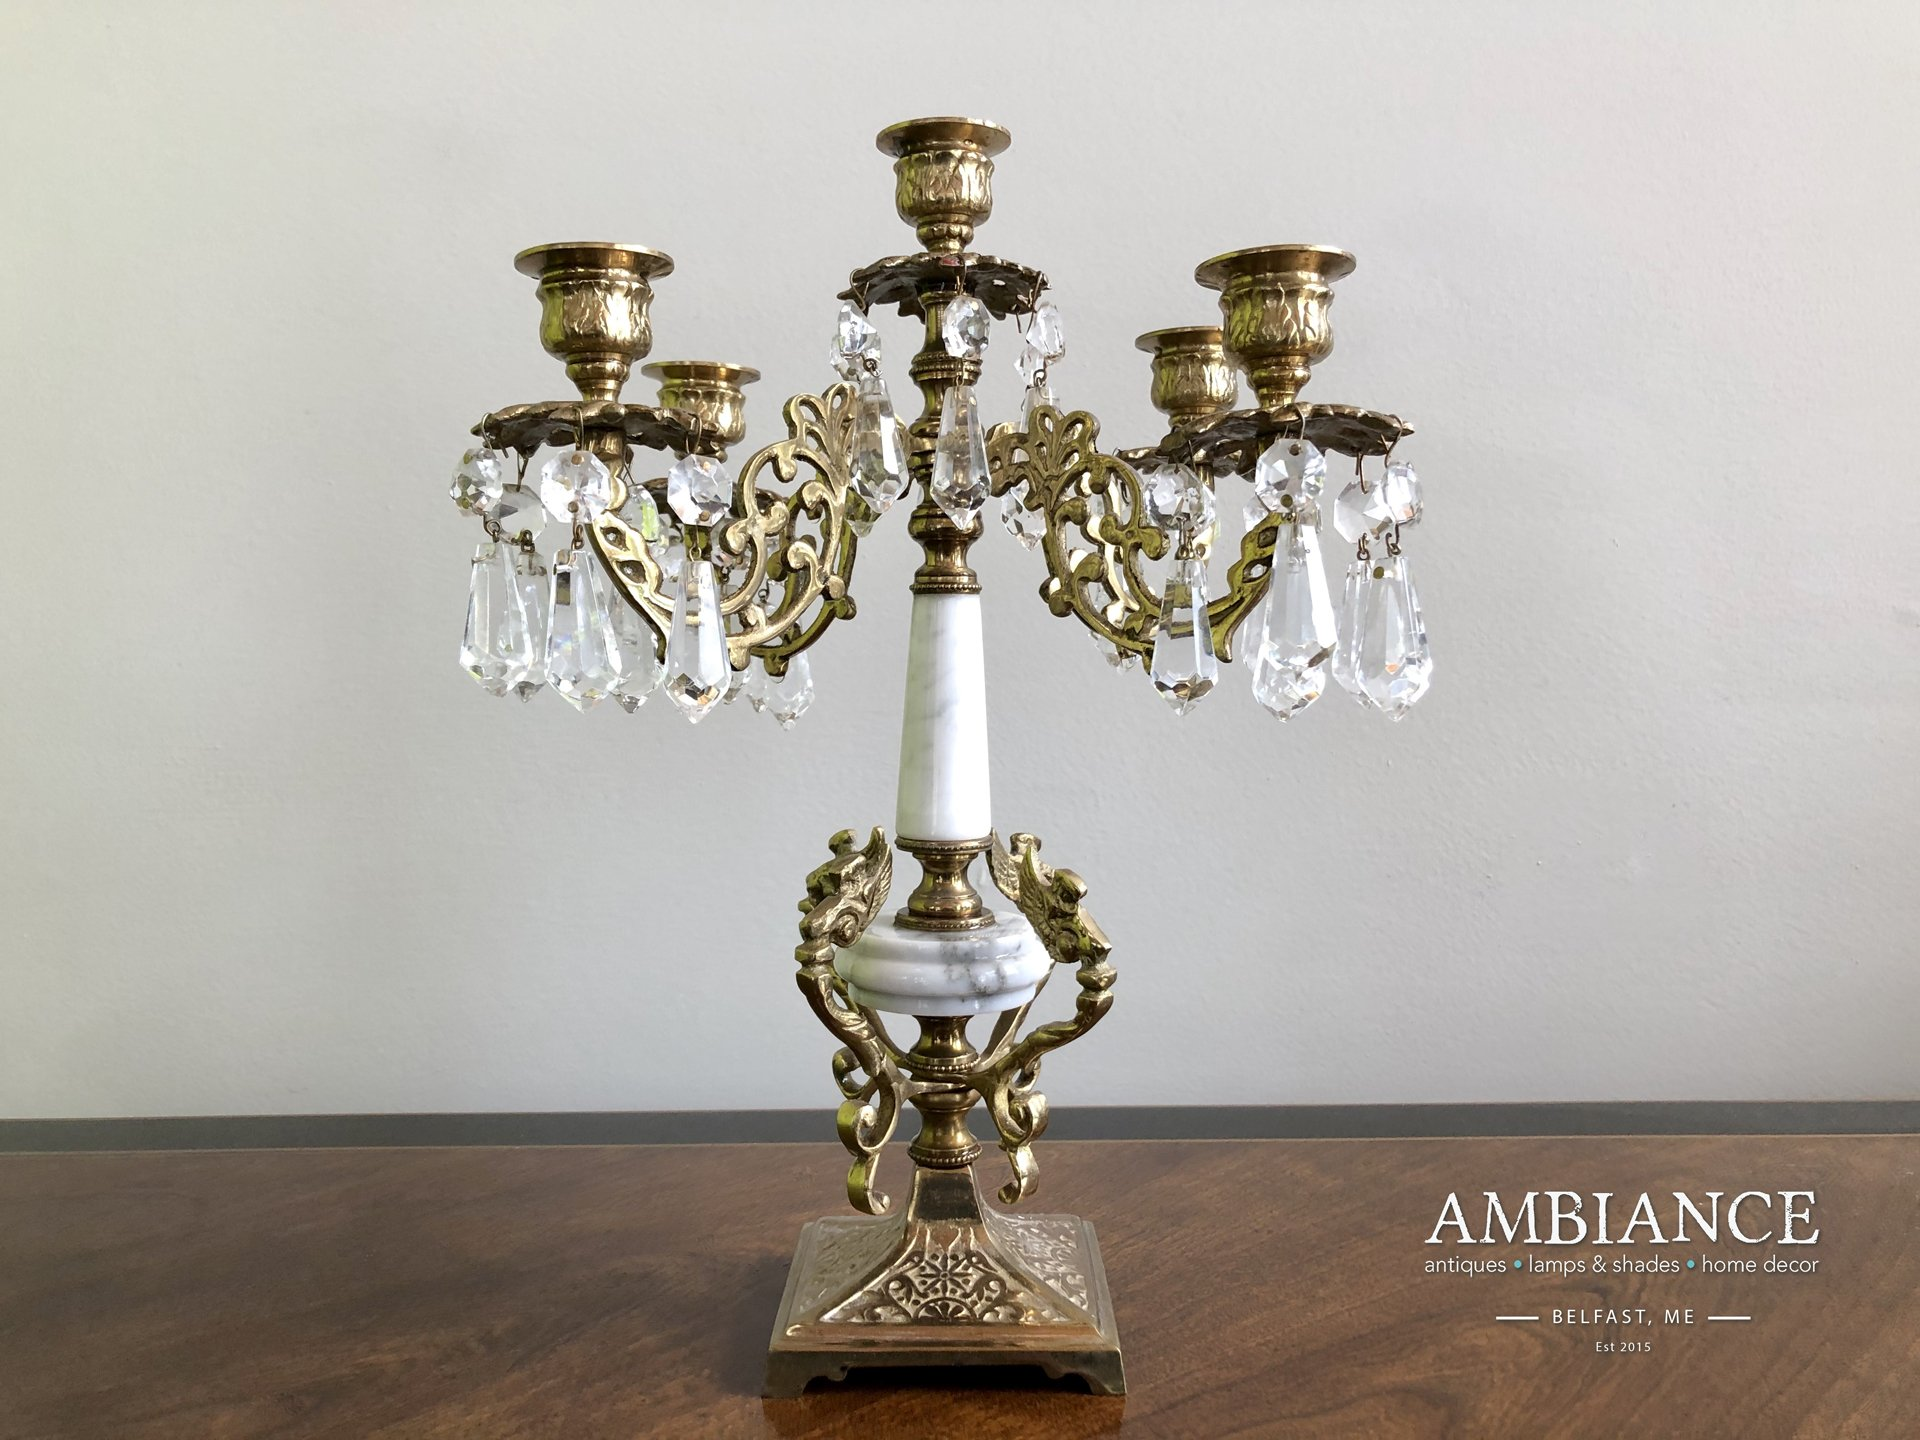 Candelabra in Bronze with Crystals and Marble at AMBIANCE (00)